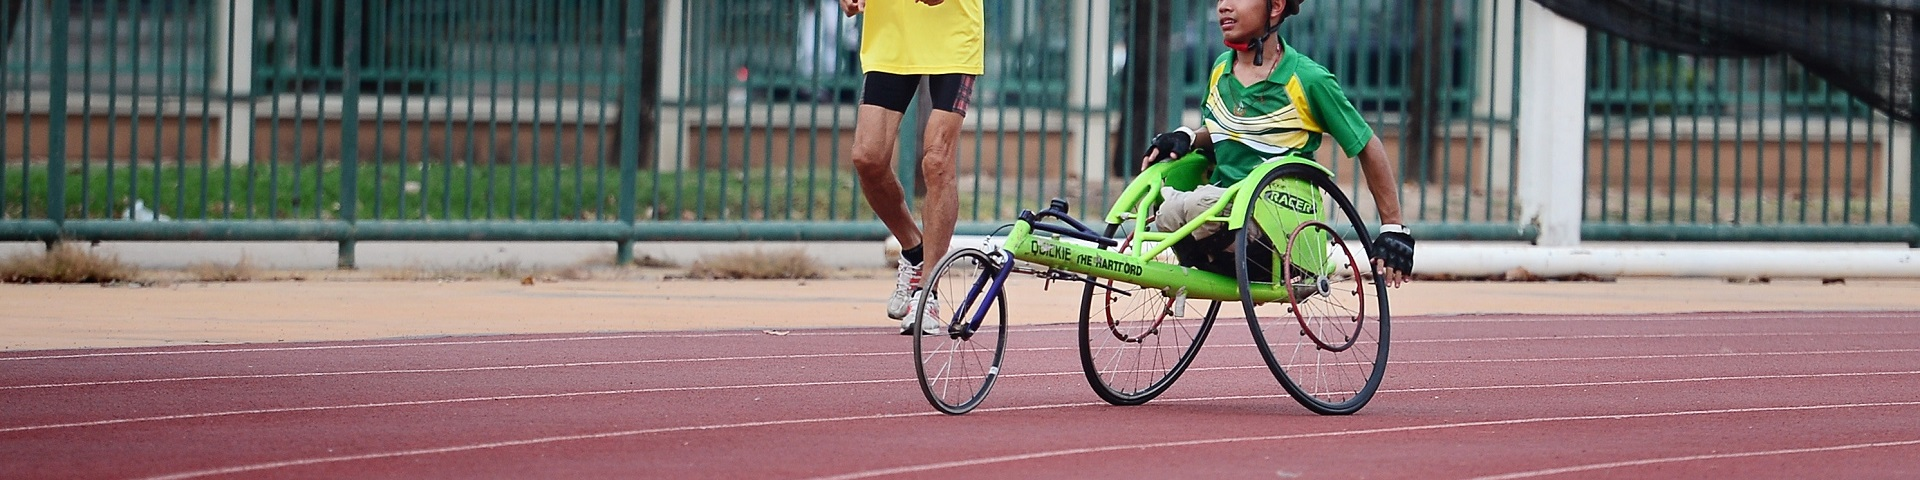 Disability cycling on racetrack